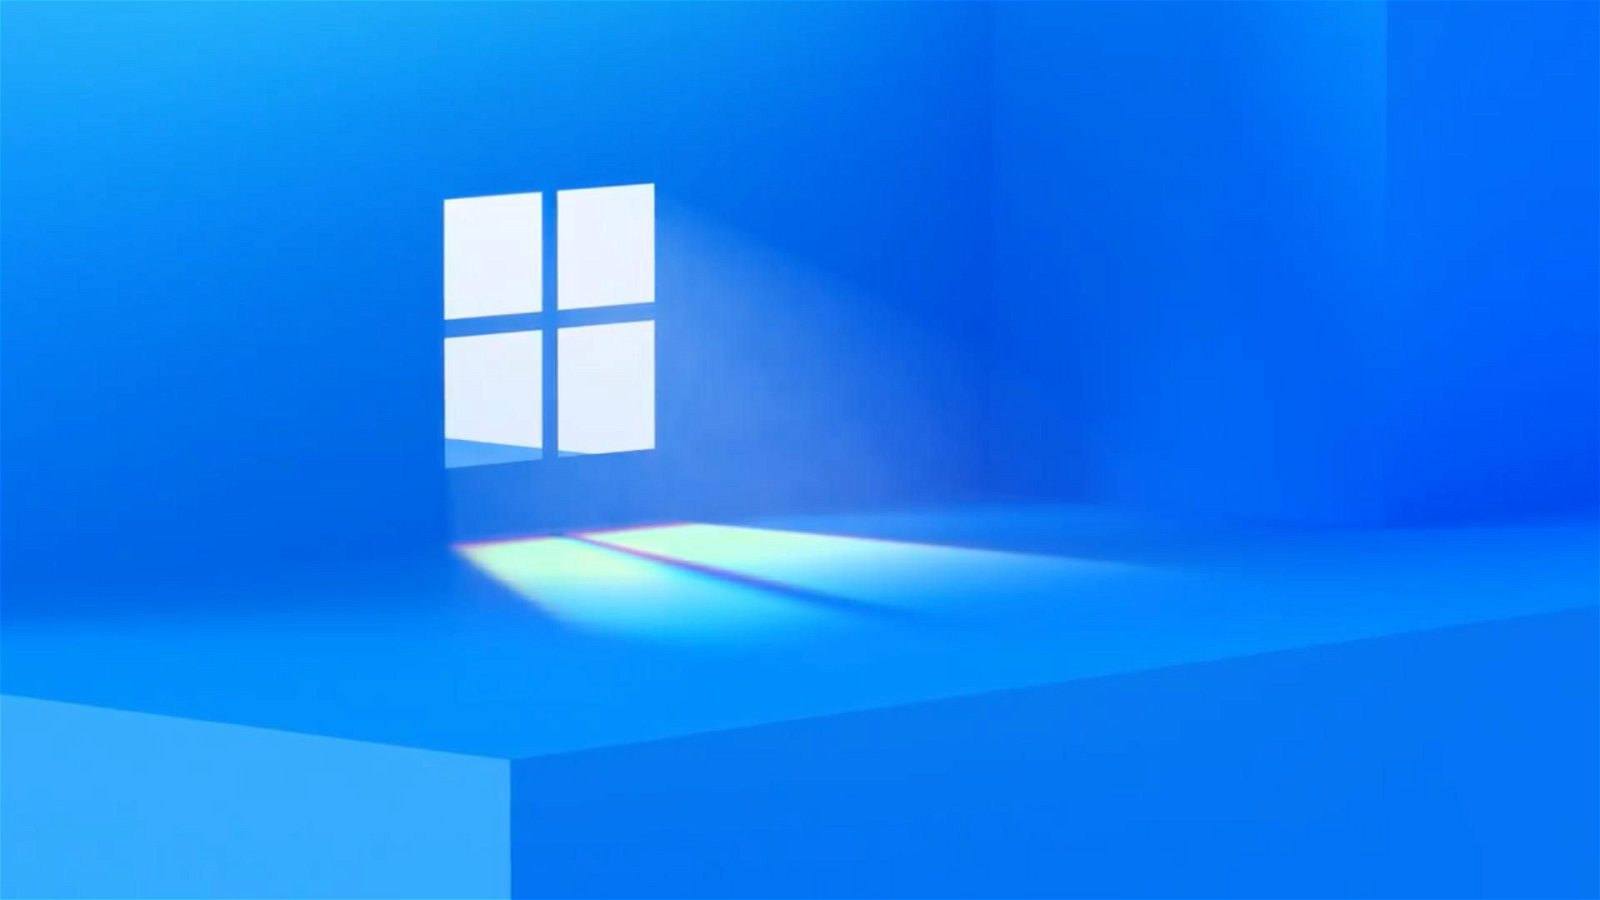 Microsoft Announces Window 11, Bringing Changes to Gaming, UI and More